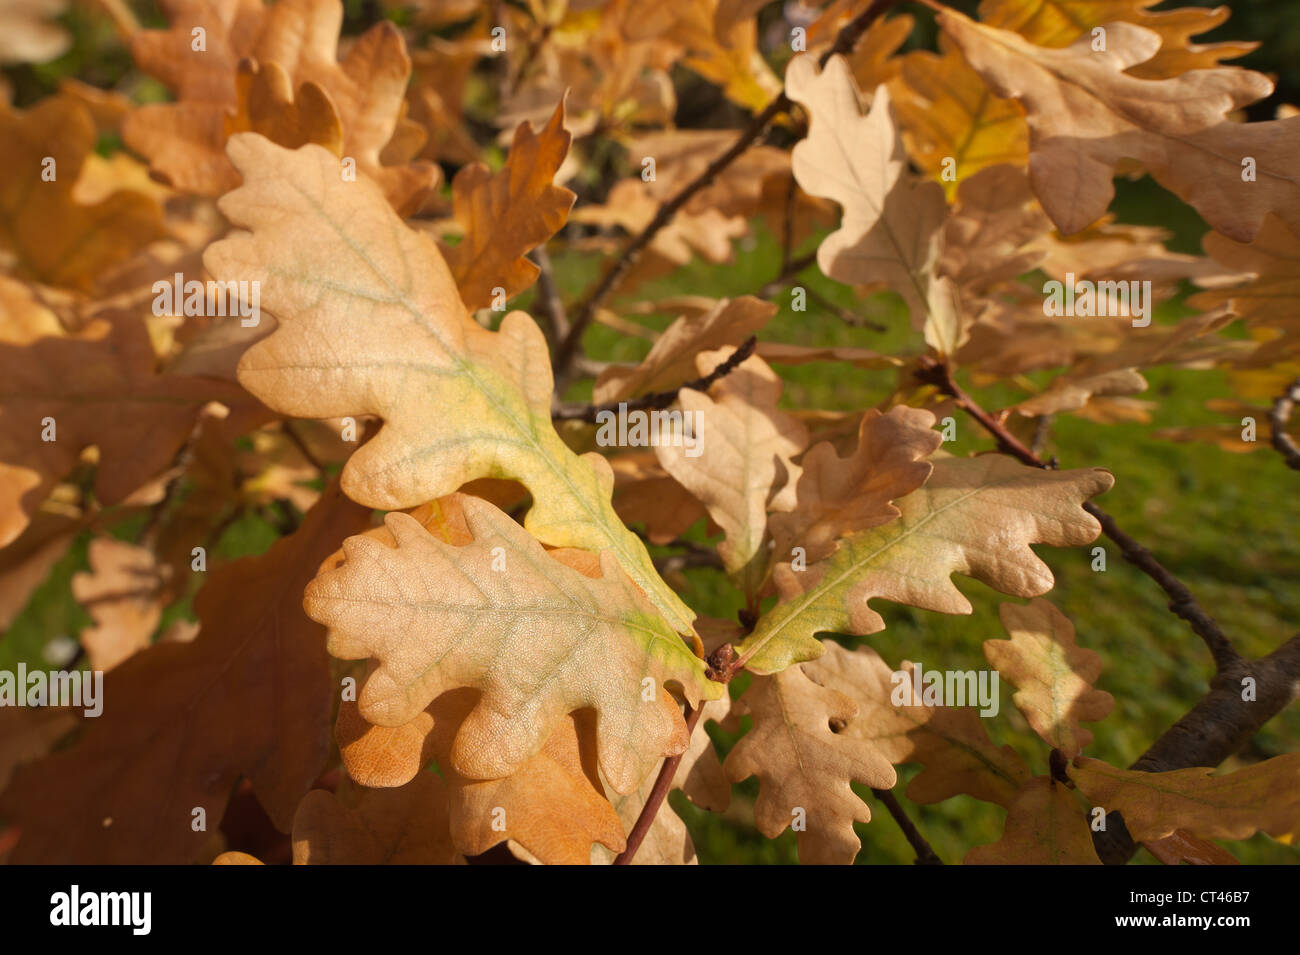 Dying common oak tree foliage due to drought and poor water supply